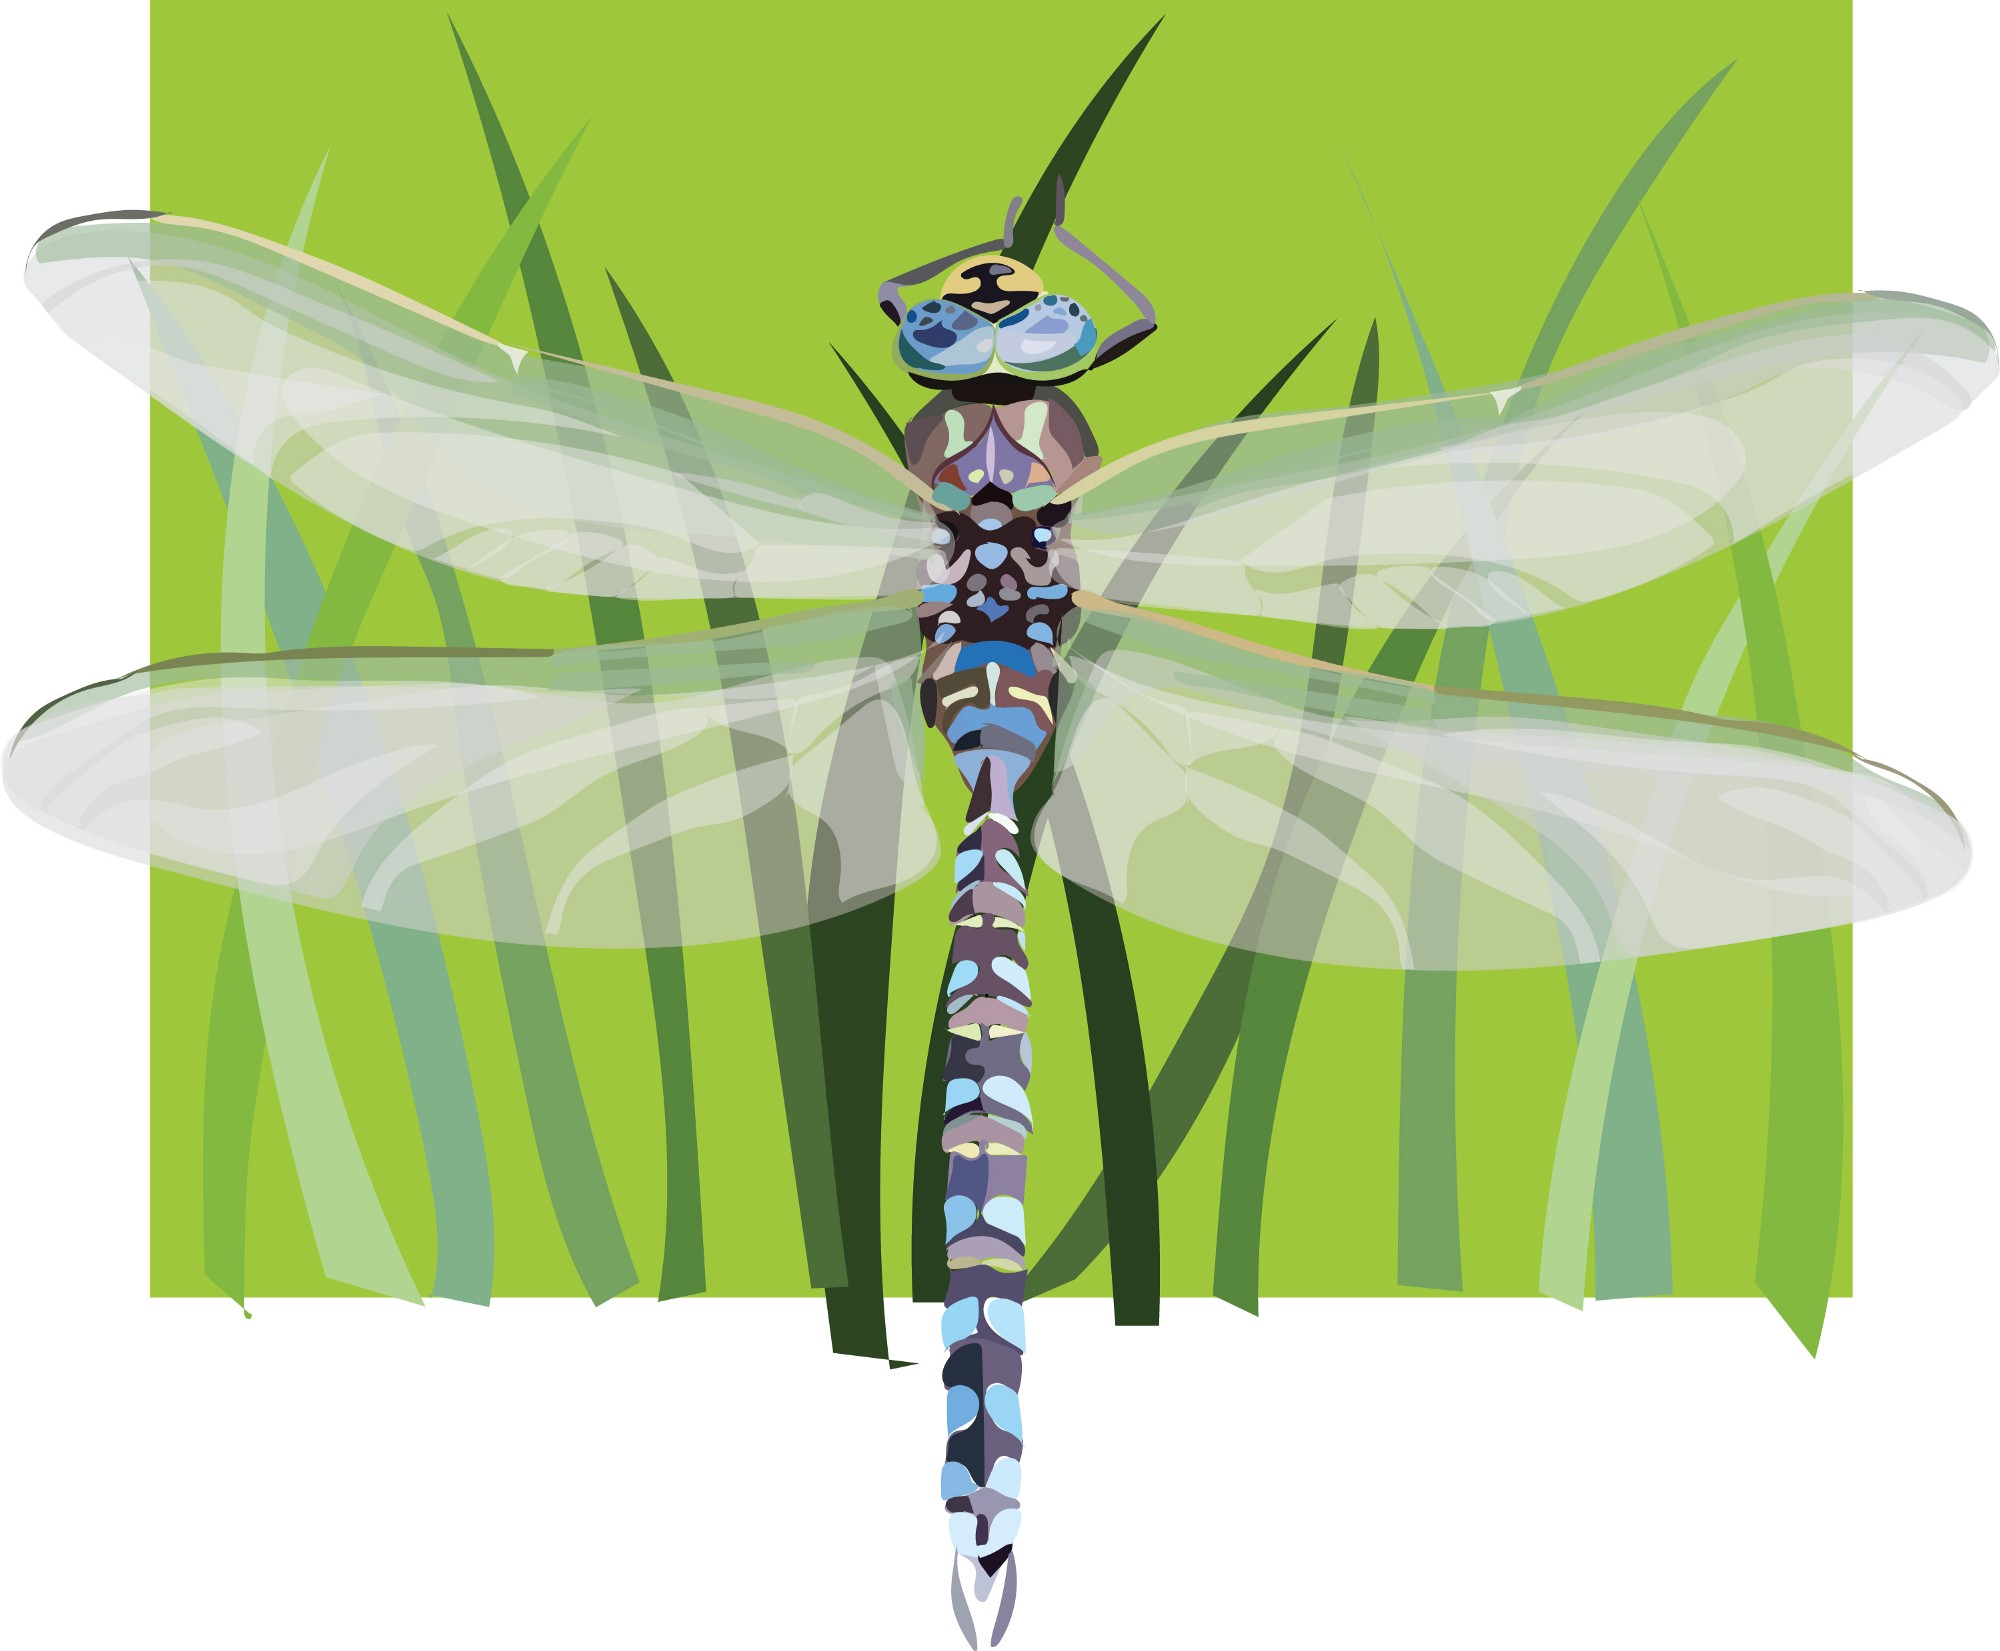 digital depiction of a dragonfly showing it on a blade of grass with wings stretched outwards.